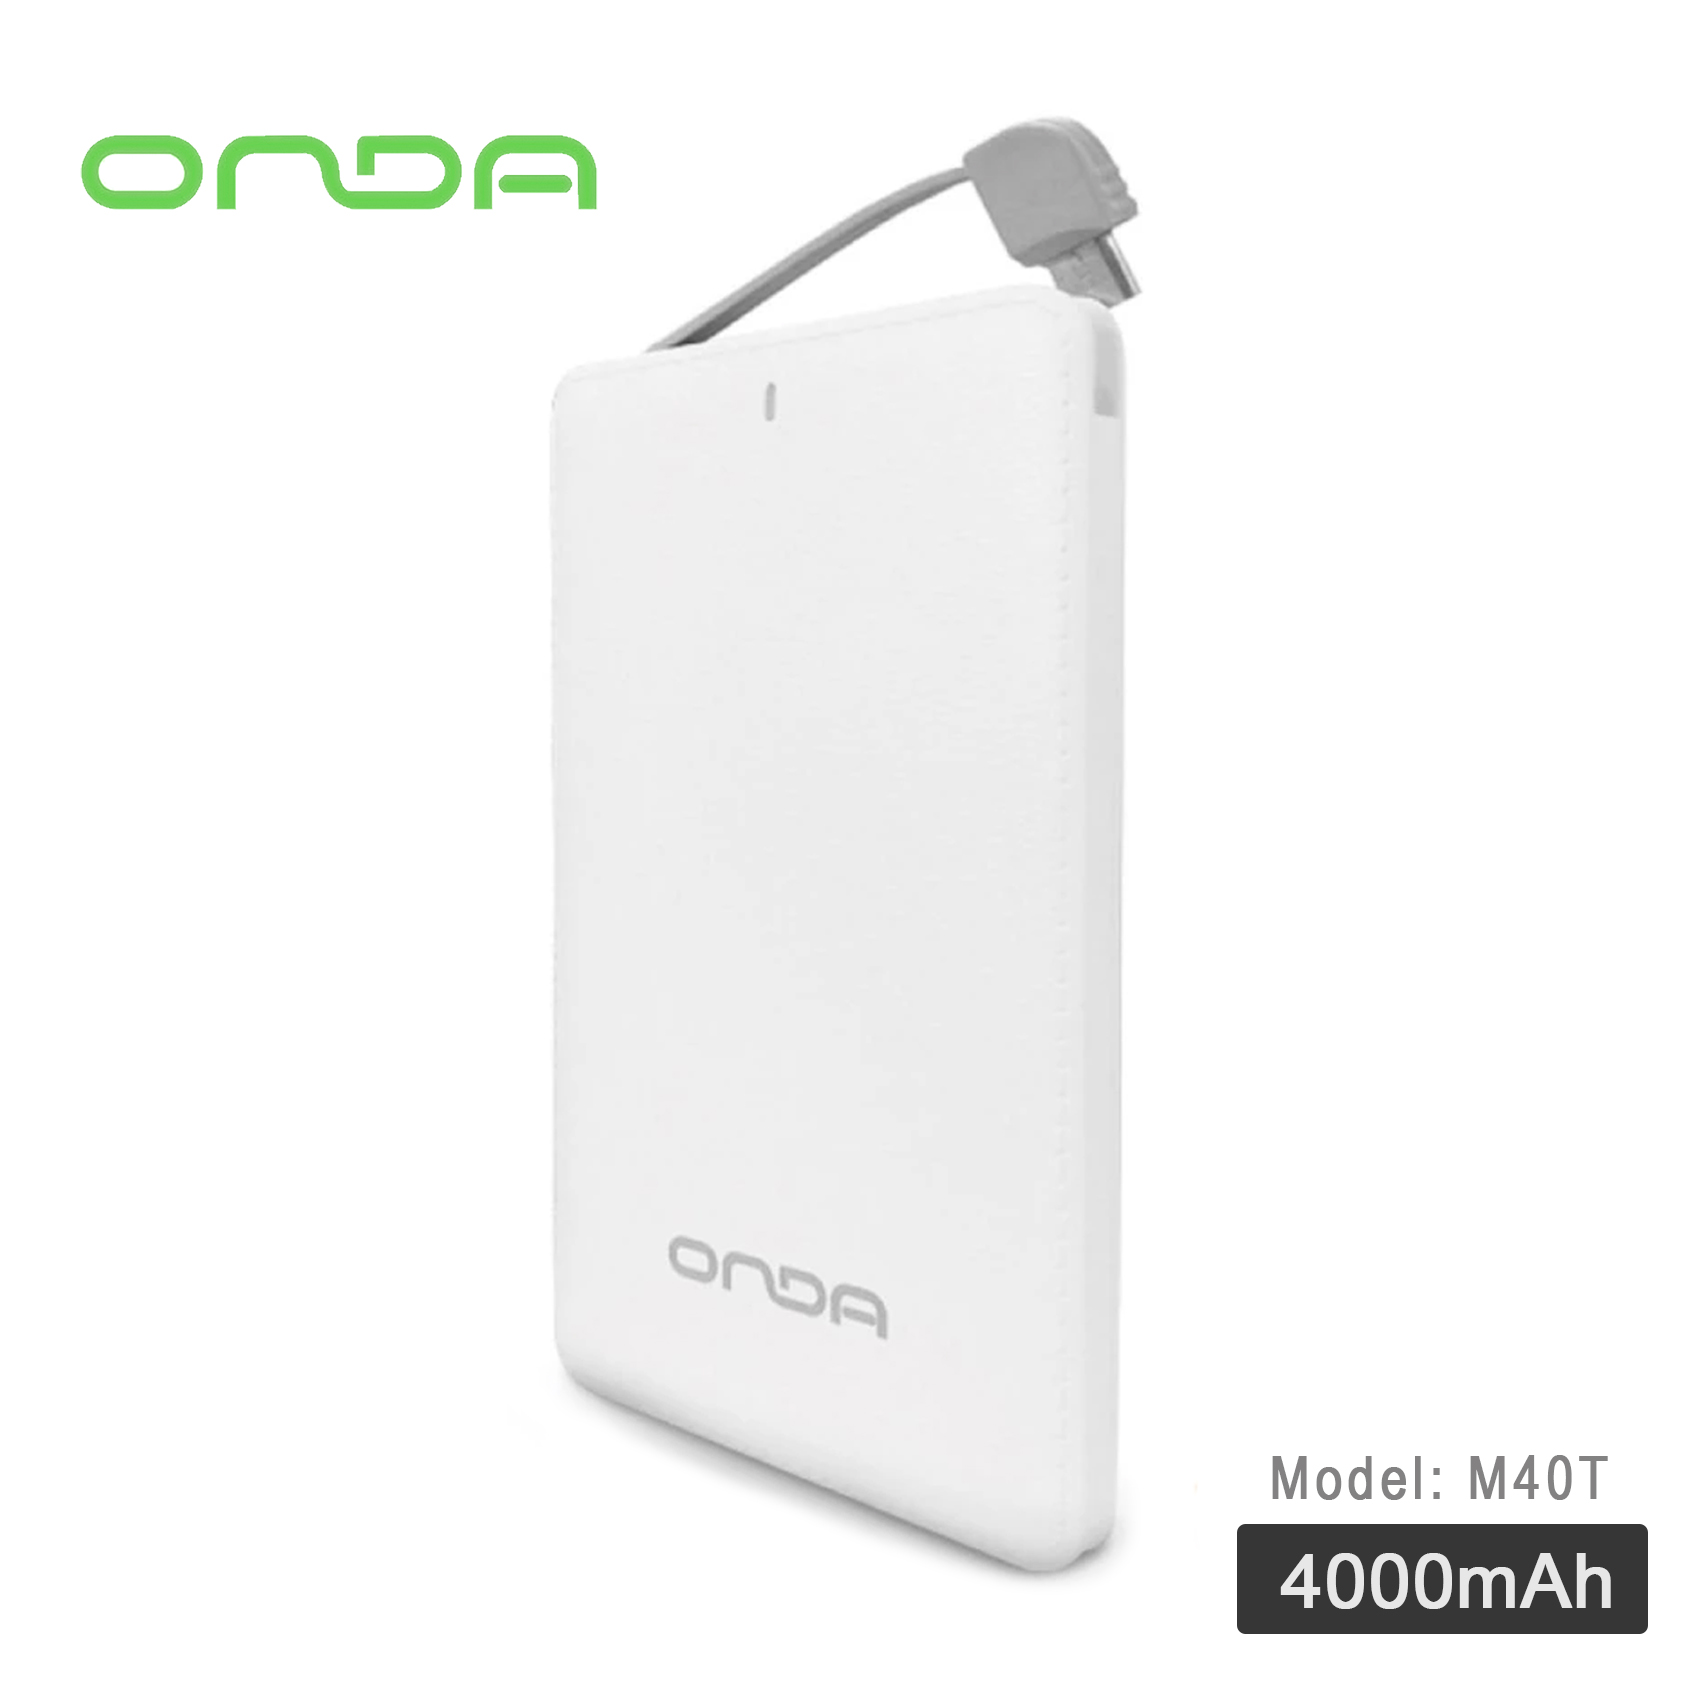 ONDA M40T 4000 mAh Power Bank With Lightning And Micro USB Adaptor - White